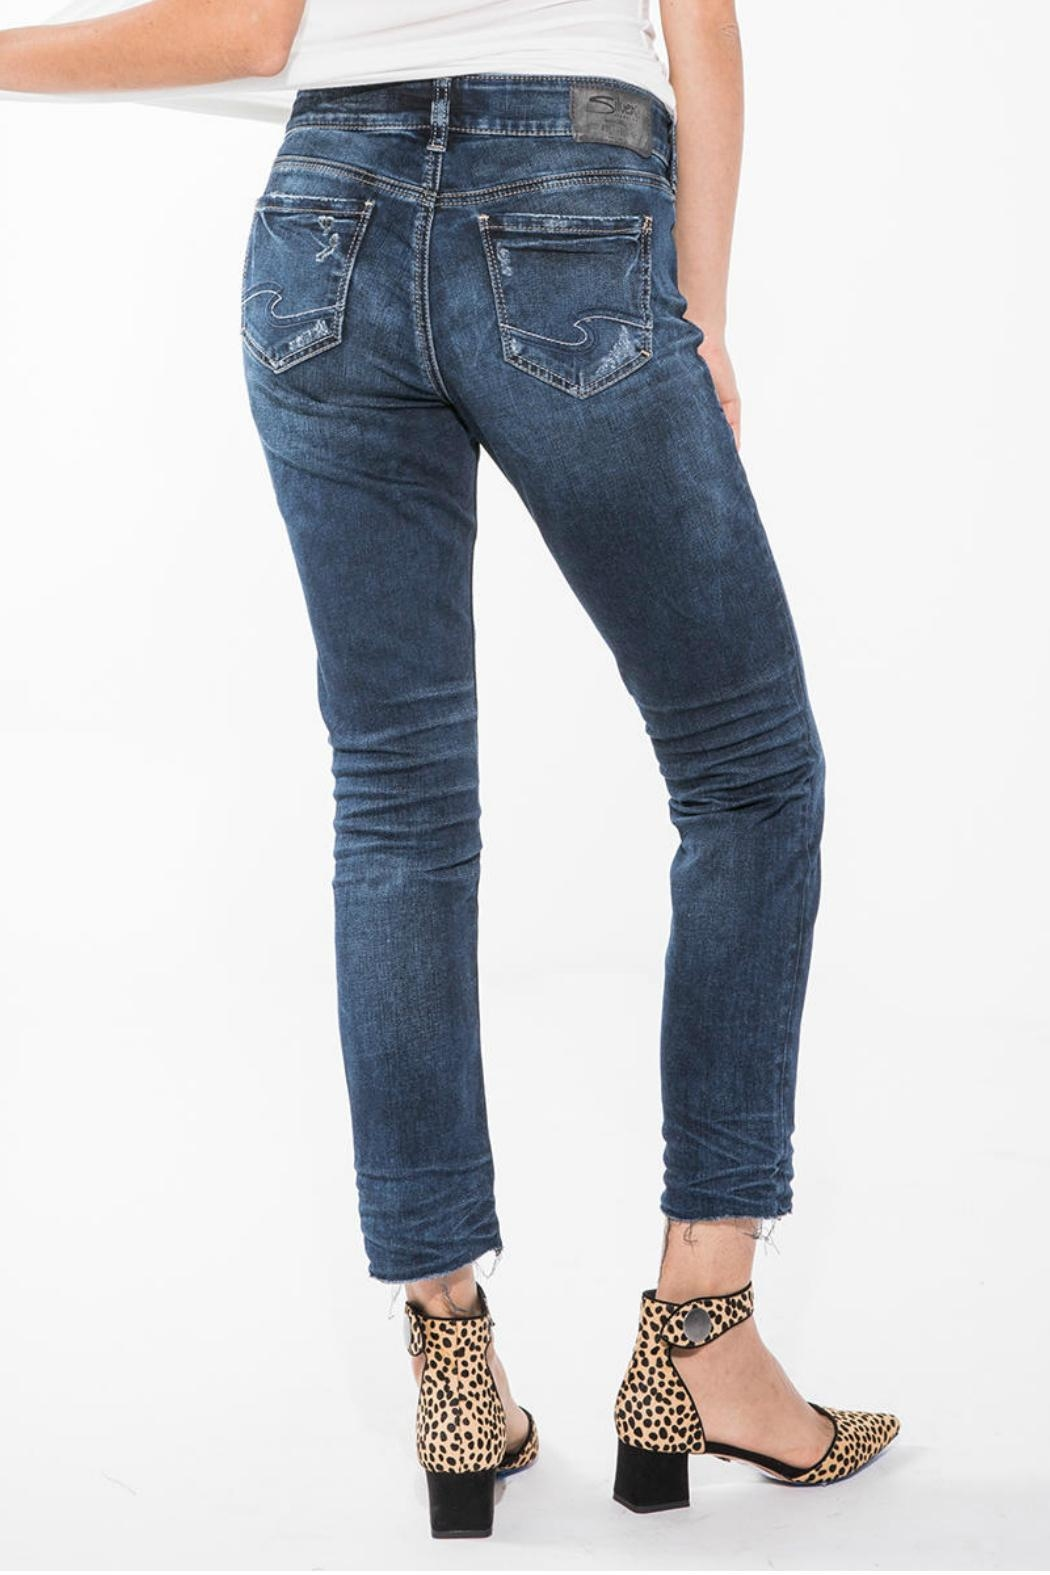 Silver Jeans Co. Elyse Ankle Jean - Side Cropped Image